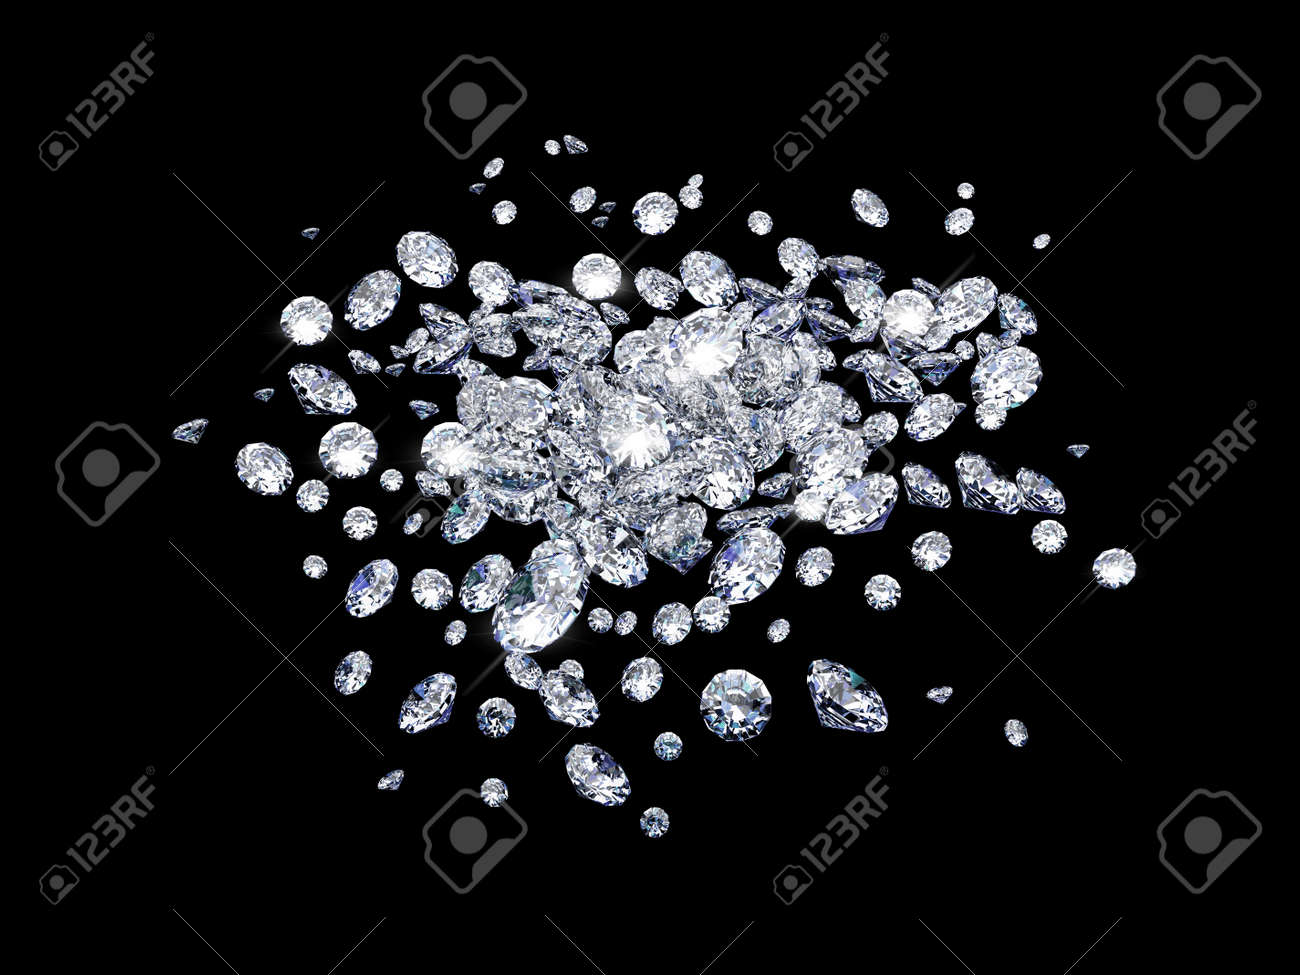 Diamonds on black surface Stock Photo - 7068408